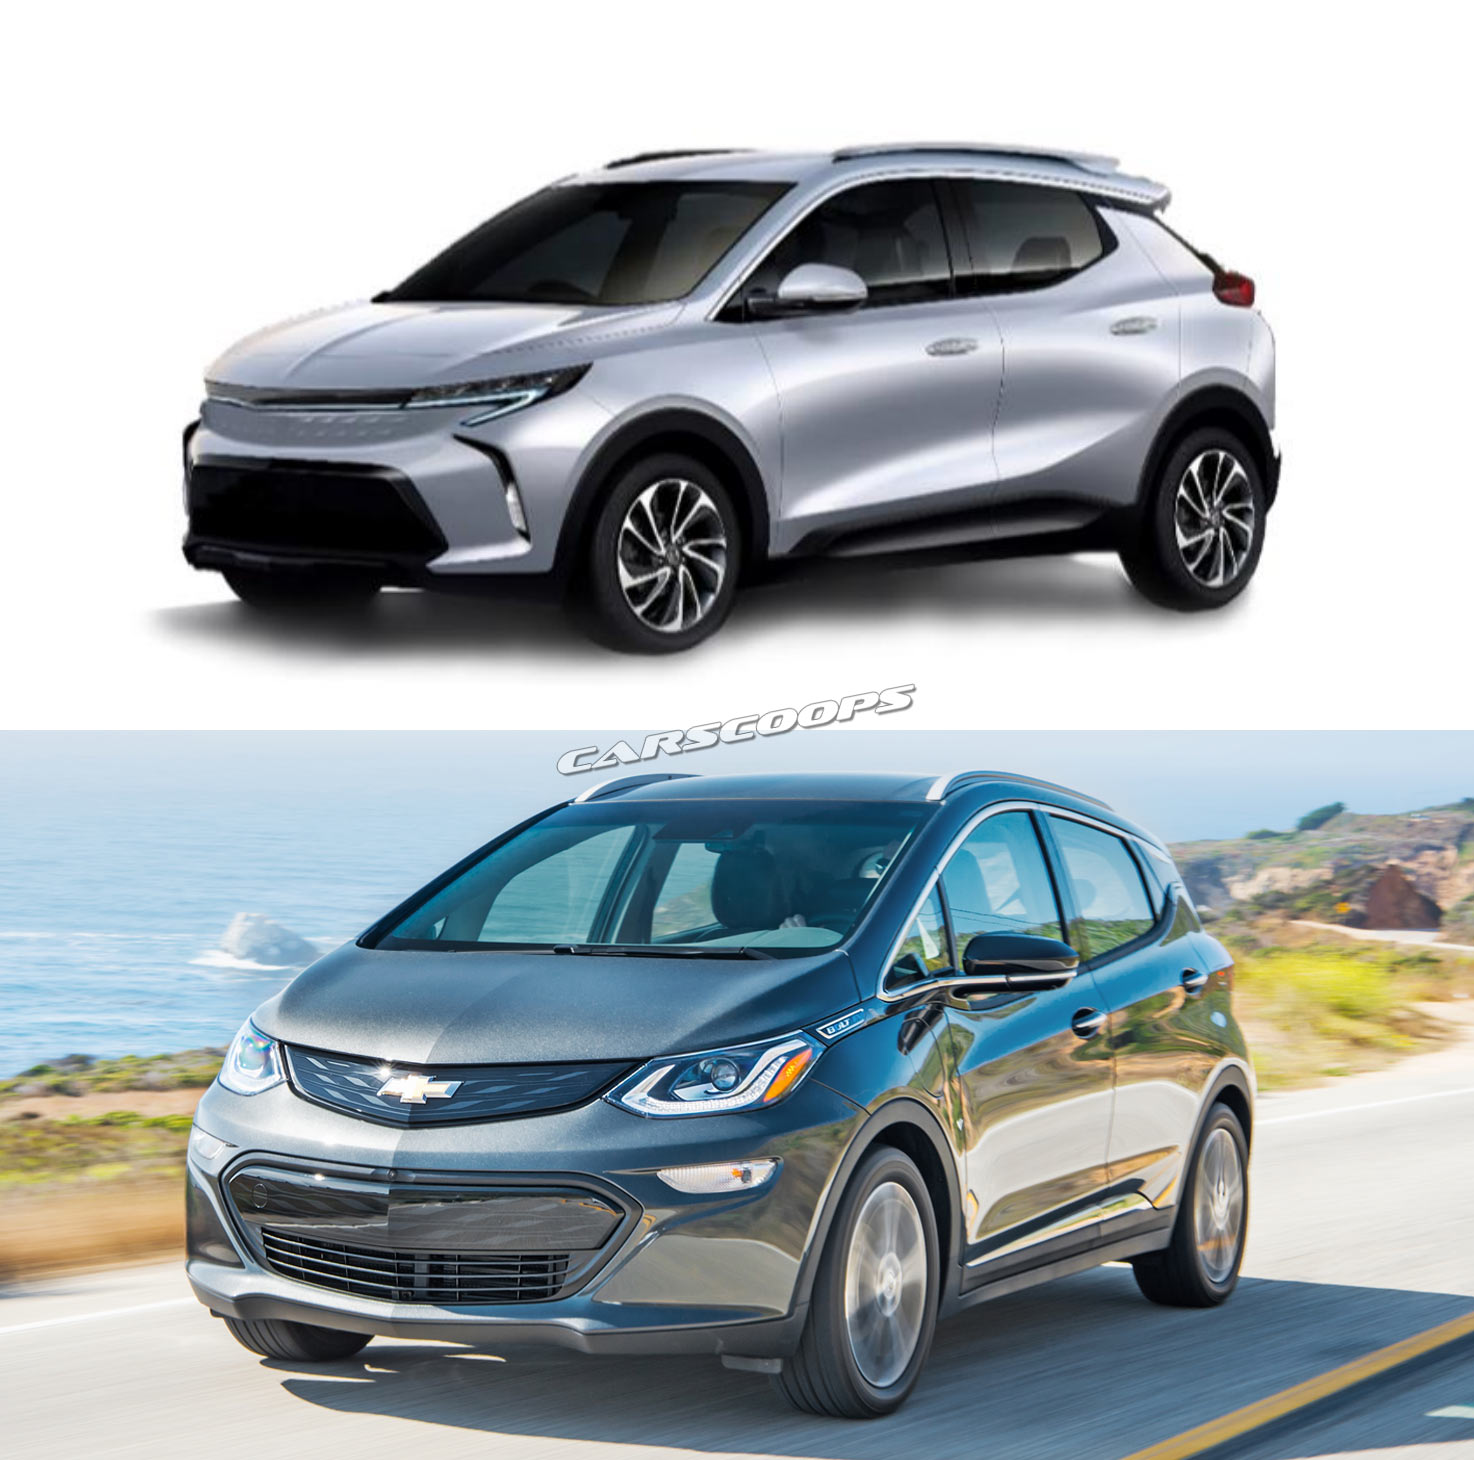 Chevrolets Bolt Based Electric Crossover Revealed Arrives By 2020 The Car Concept Chevrolet Fnr Chevy X